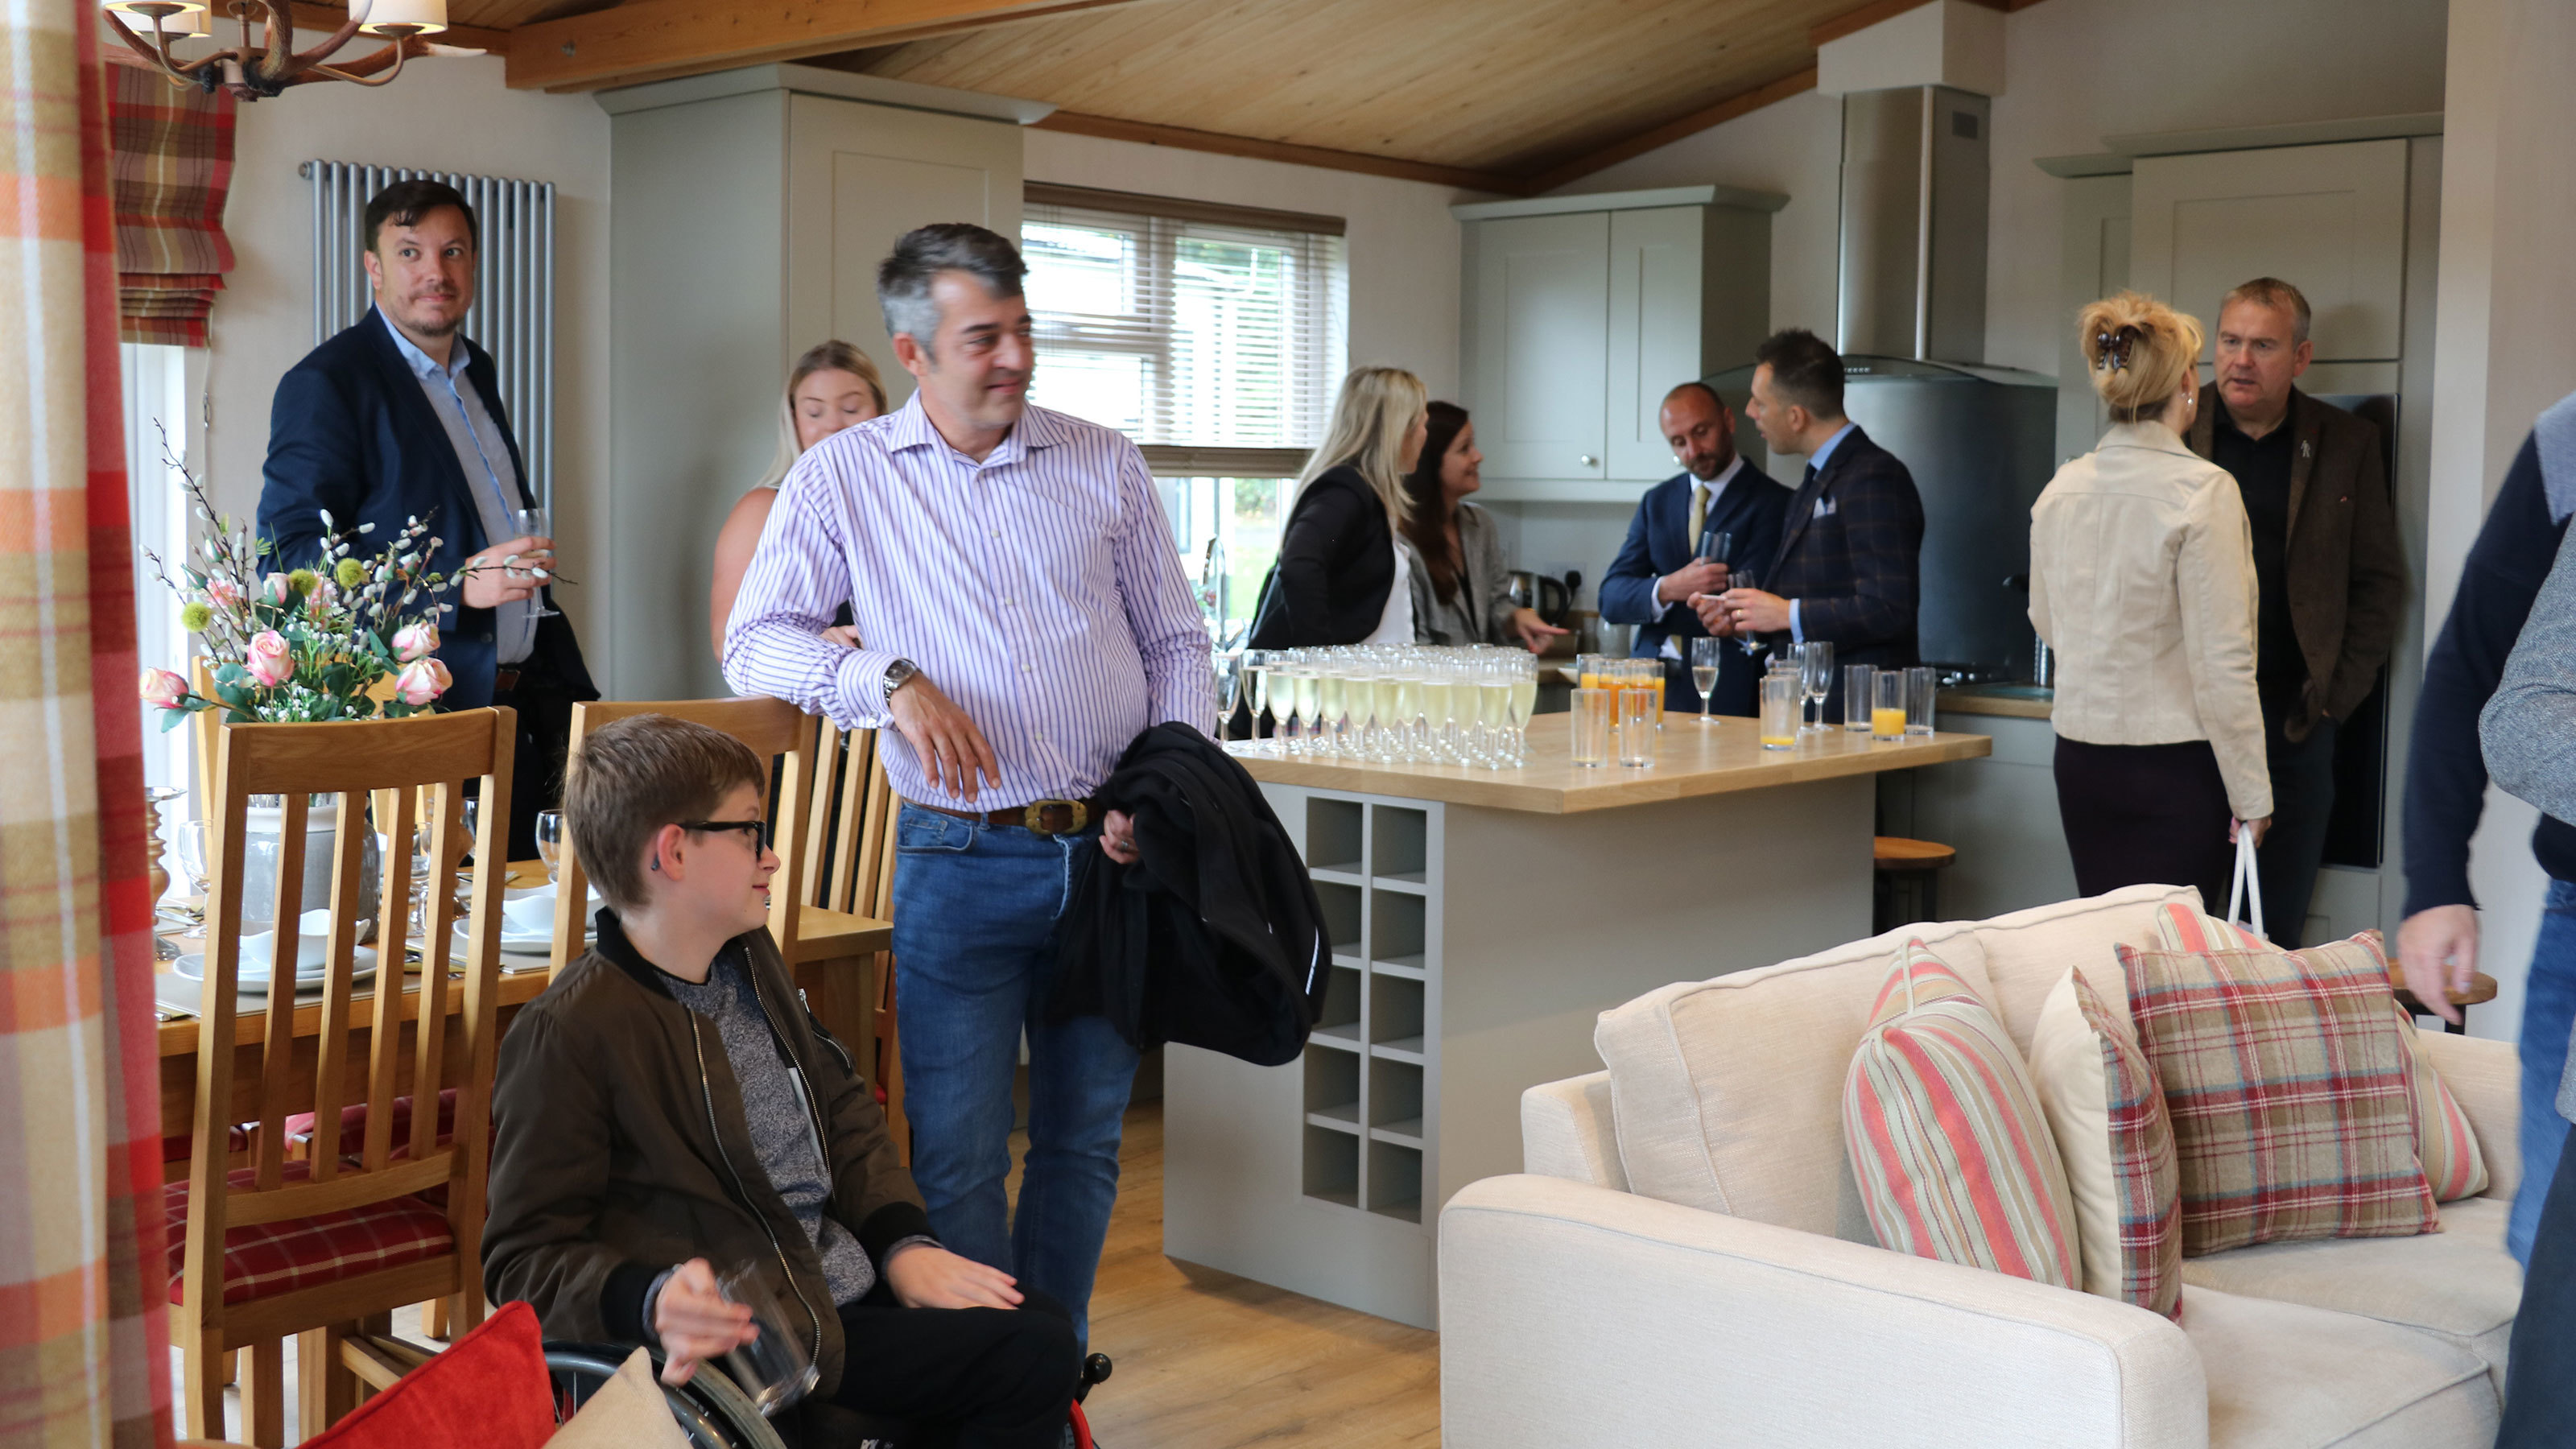 Guests-get-a-first-look-inside-the-luxury-lodge-at-Shorefield-Country-Park